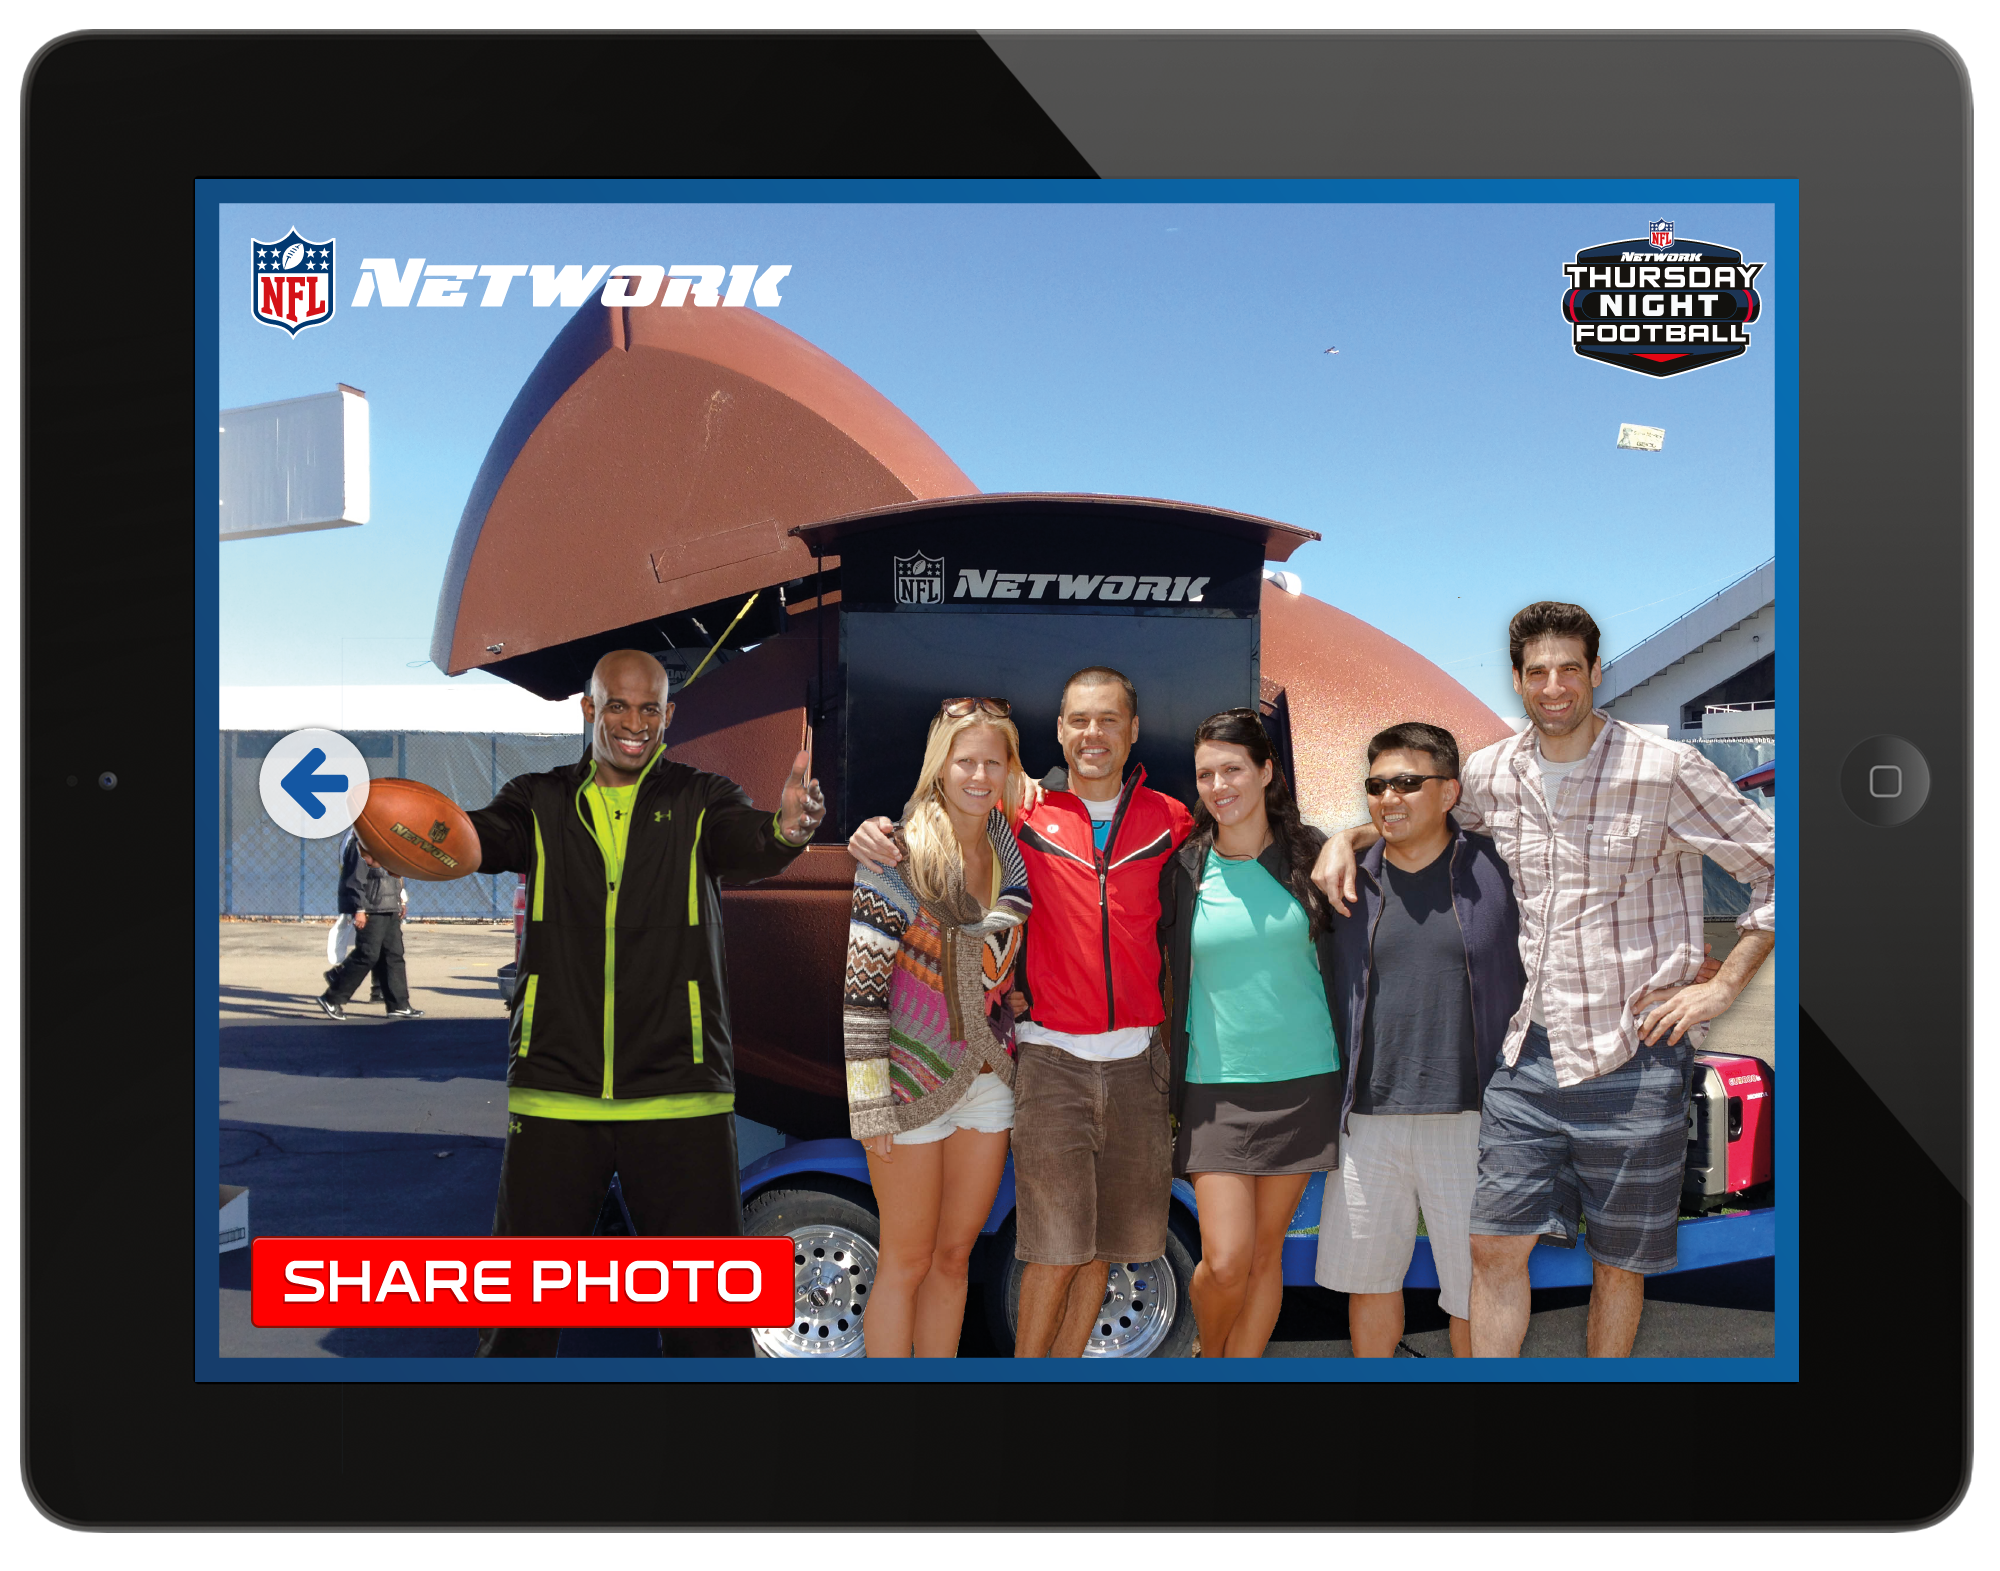 nfl_screen3